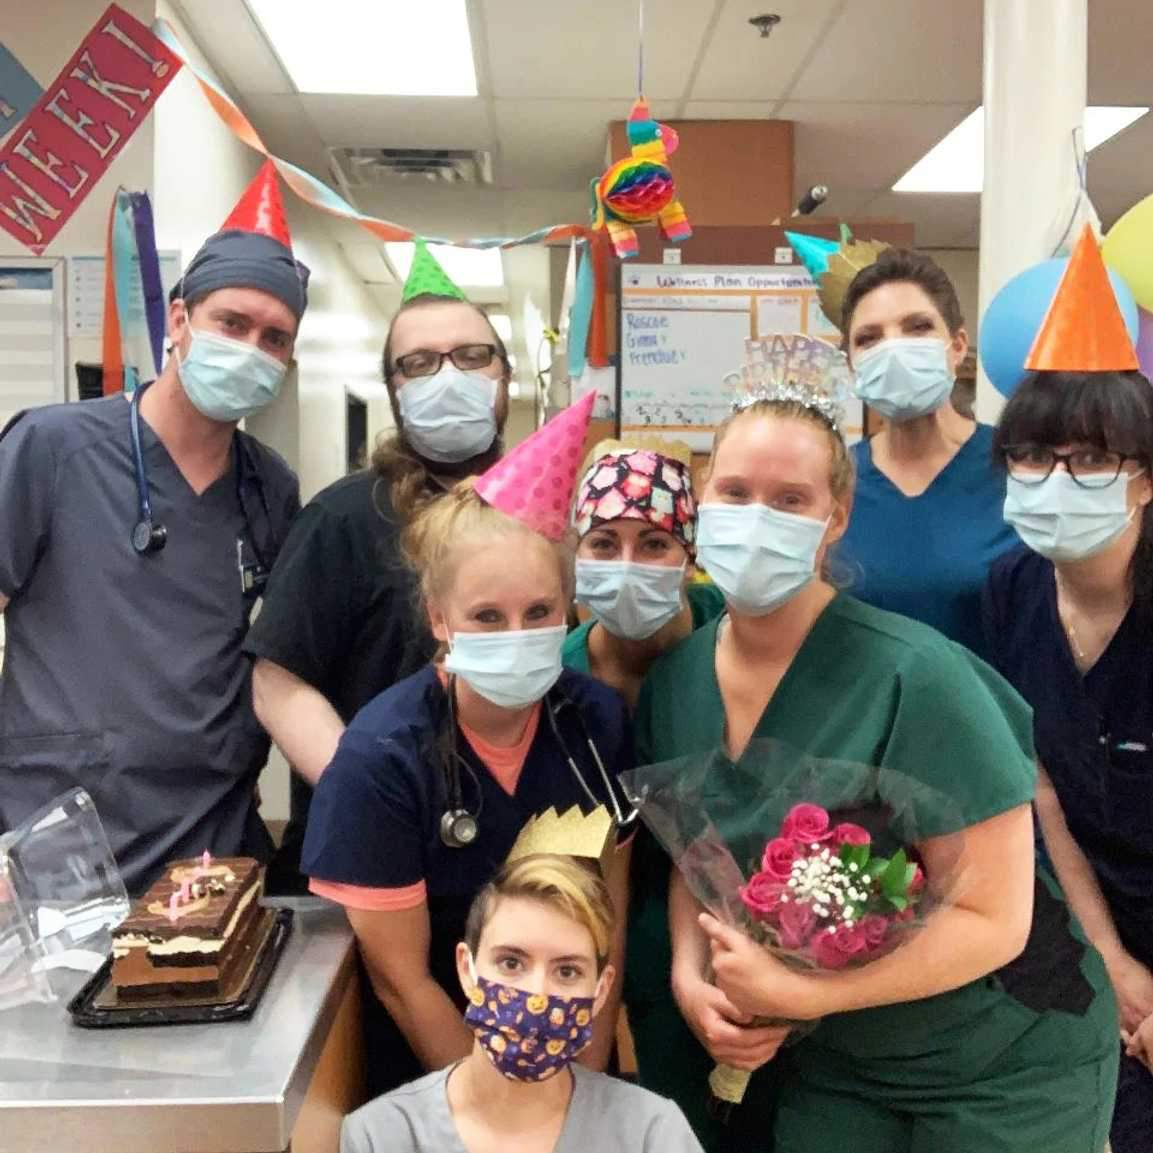 A group of associates celebrating a milestone at the Banfield Pet Hospital